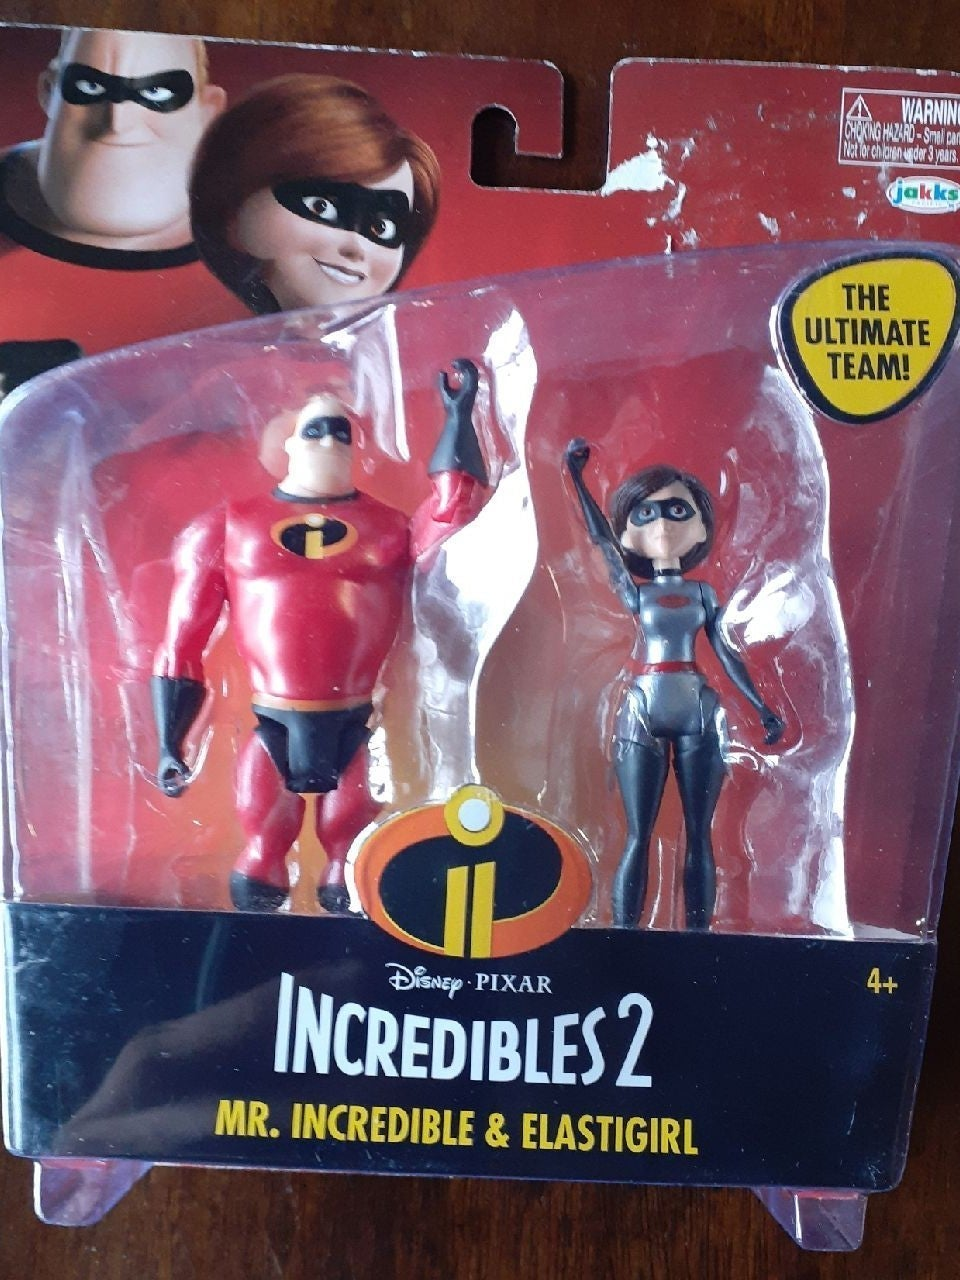 Disney Pixar Incredibles 2 mr. Incredibl